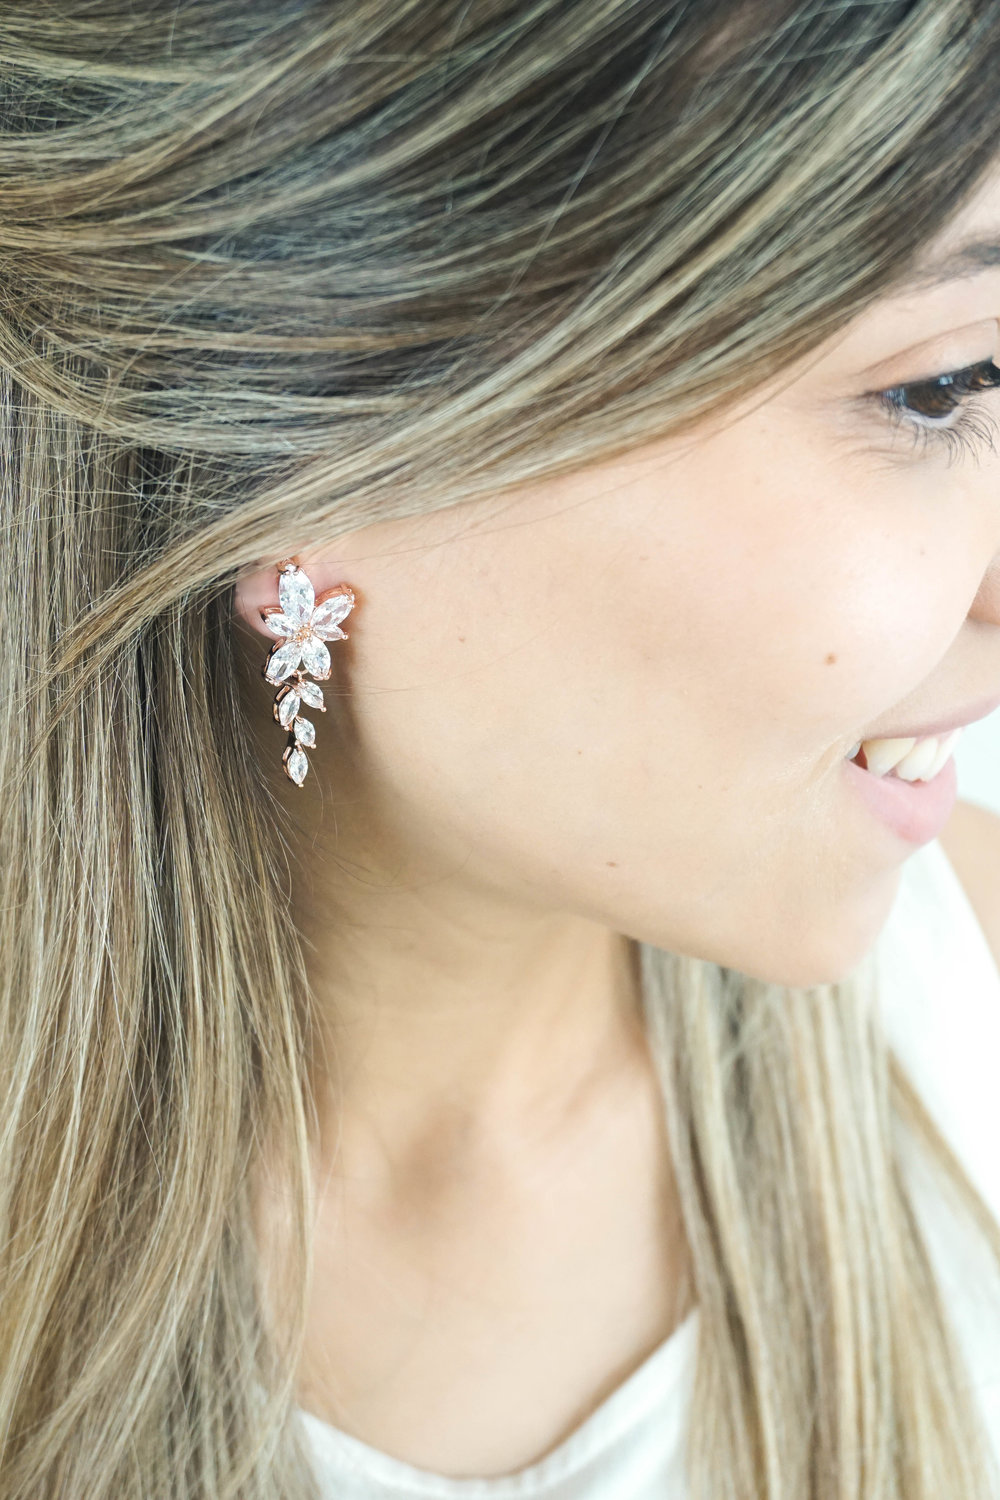 Bridal-Earrings-Photoshoot-with-Wink-of-Pink-Shop-Commercial-Photography-Bridal-Jewelry8.jpg